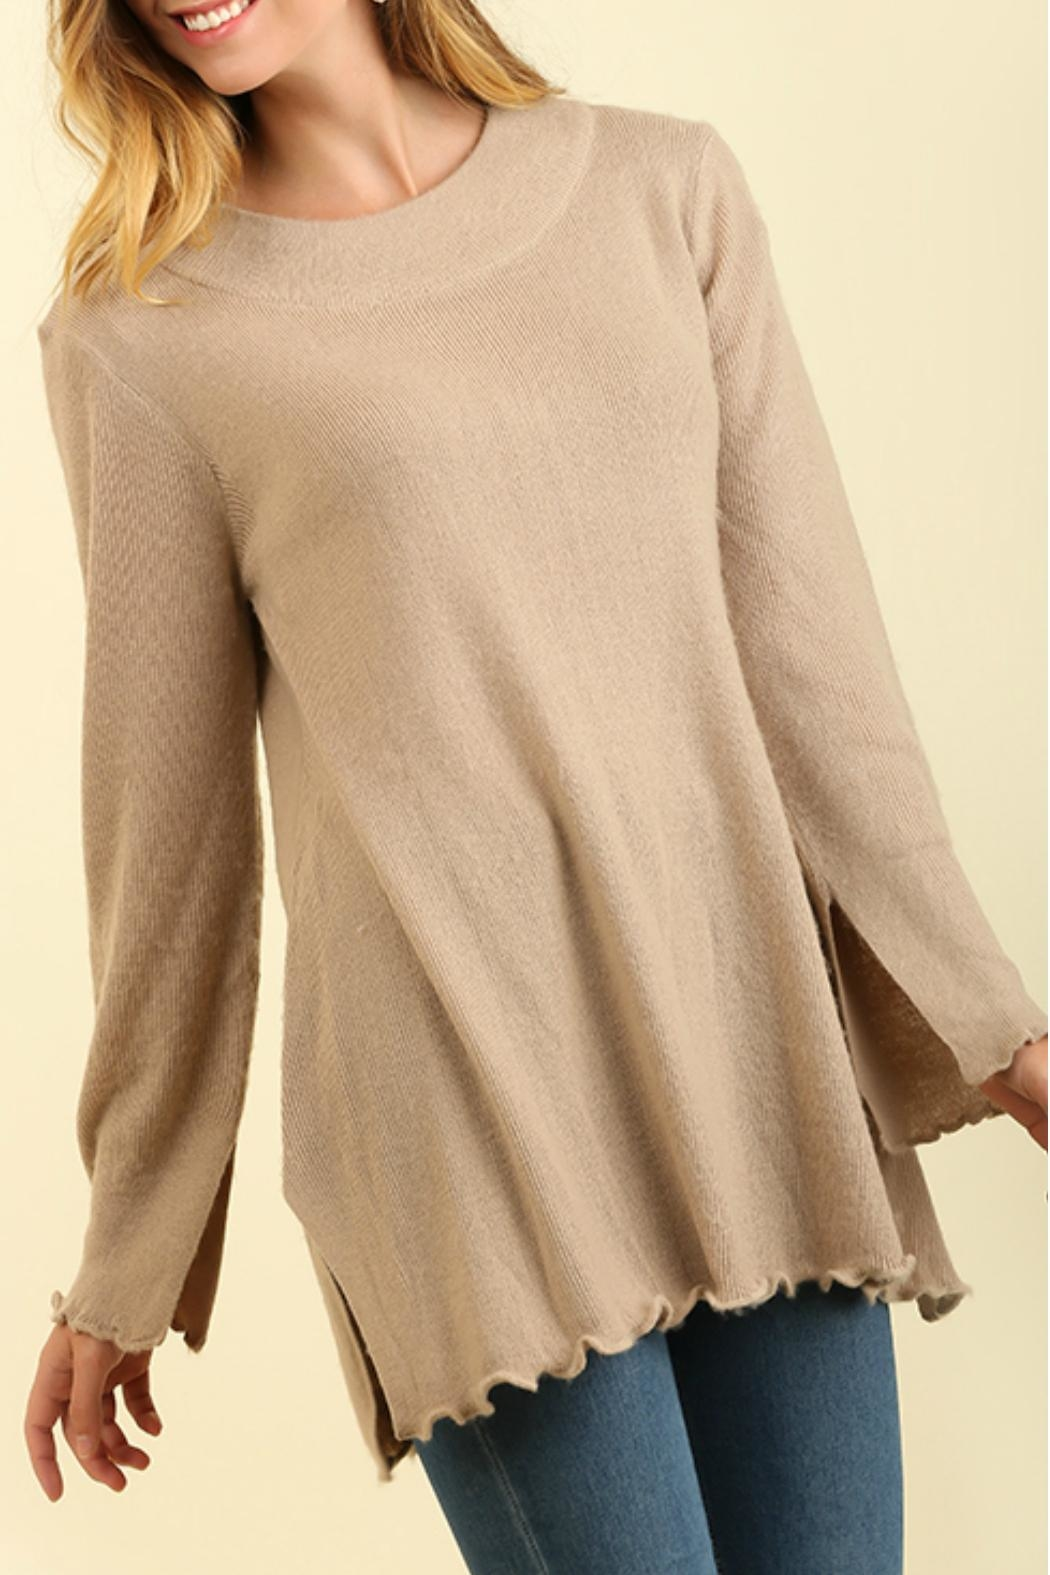 Umgee USA Curly Hemmed Sweater - Front Full Image